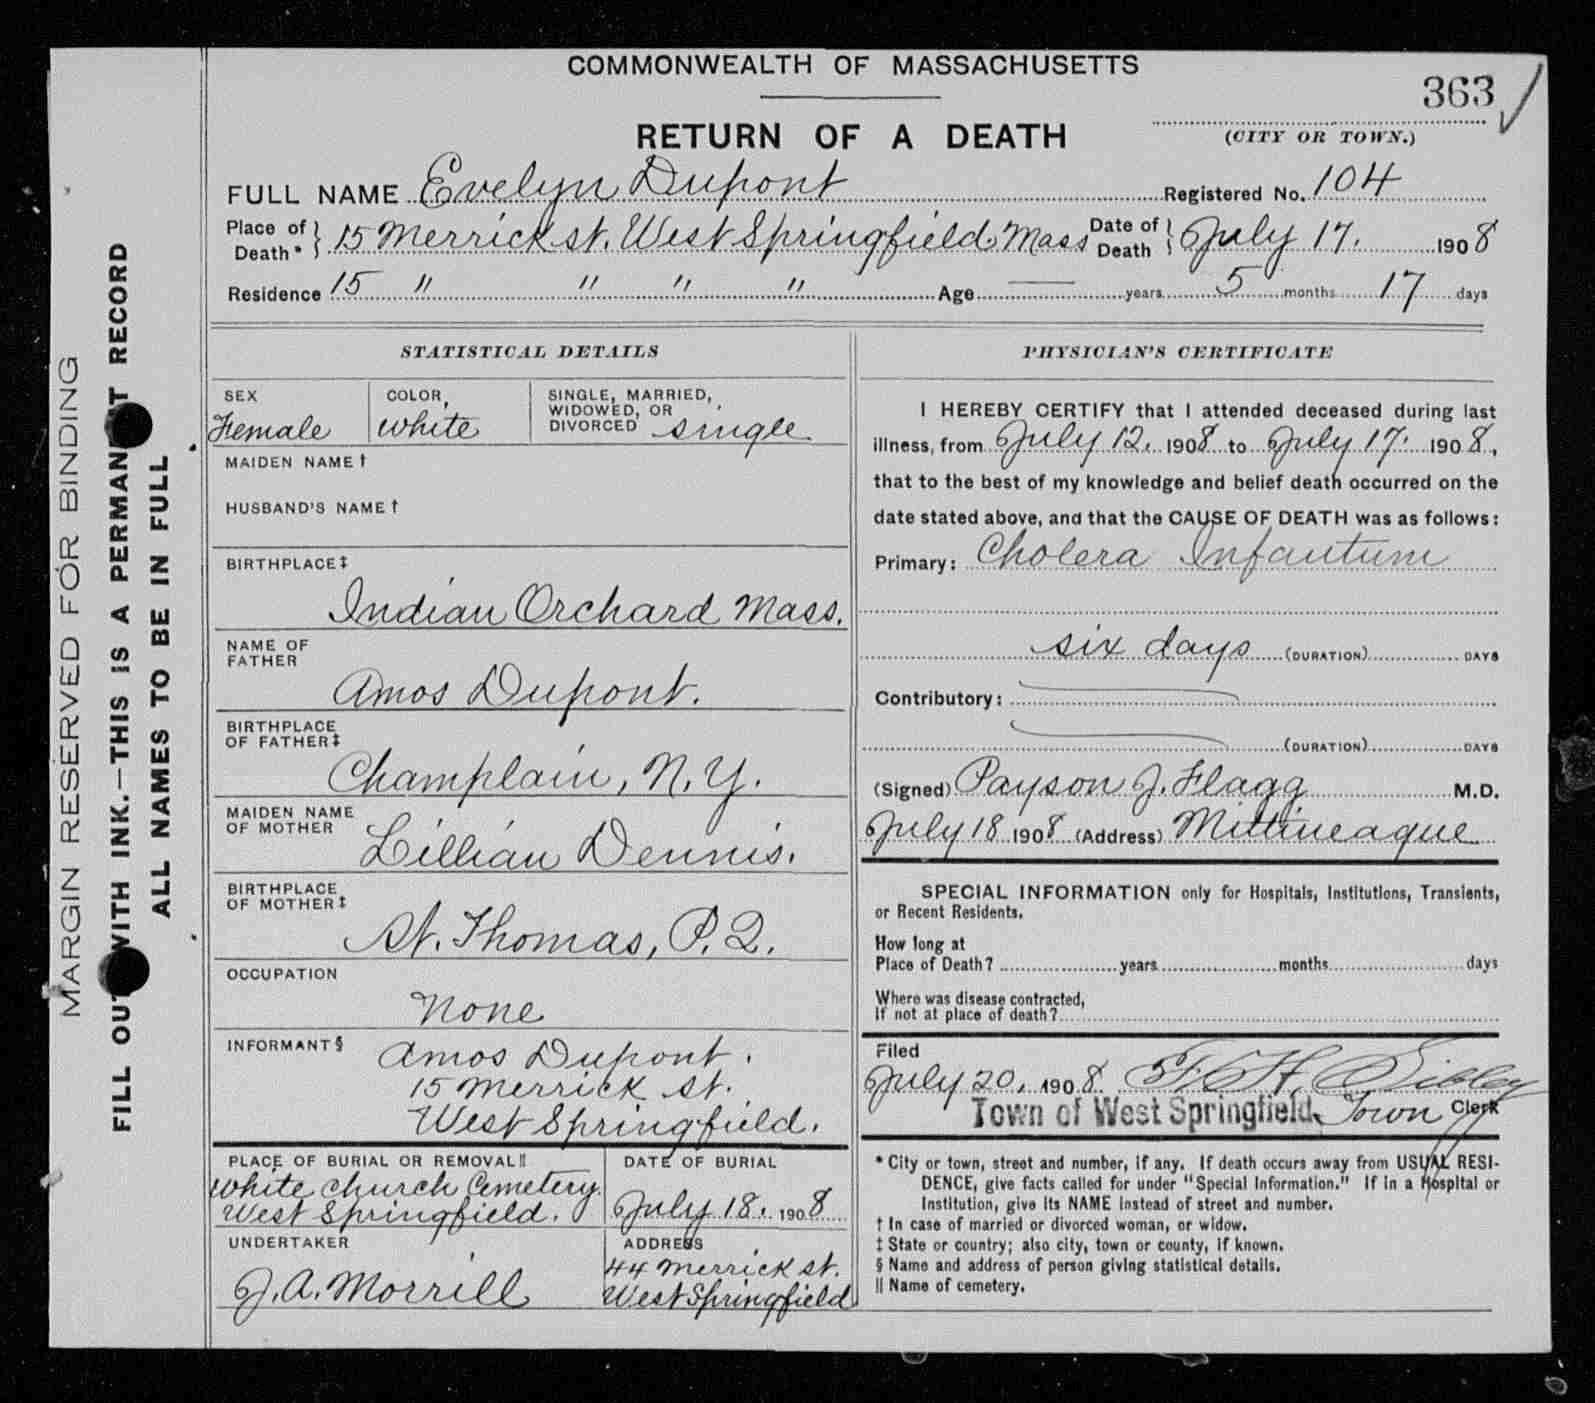 Evelyn anna dupont 1908 1908 find a grave memorial death certificate for evelyn dupont aiddatafo Image collections